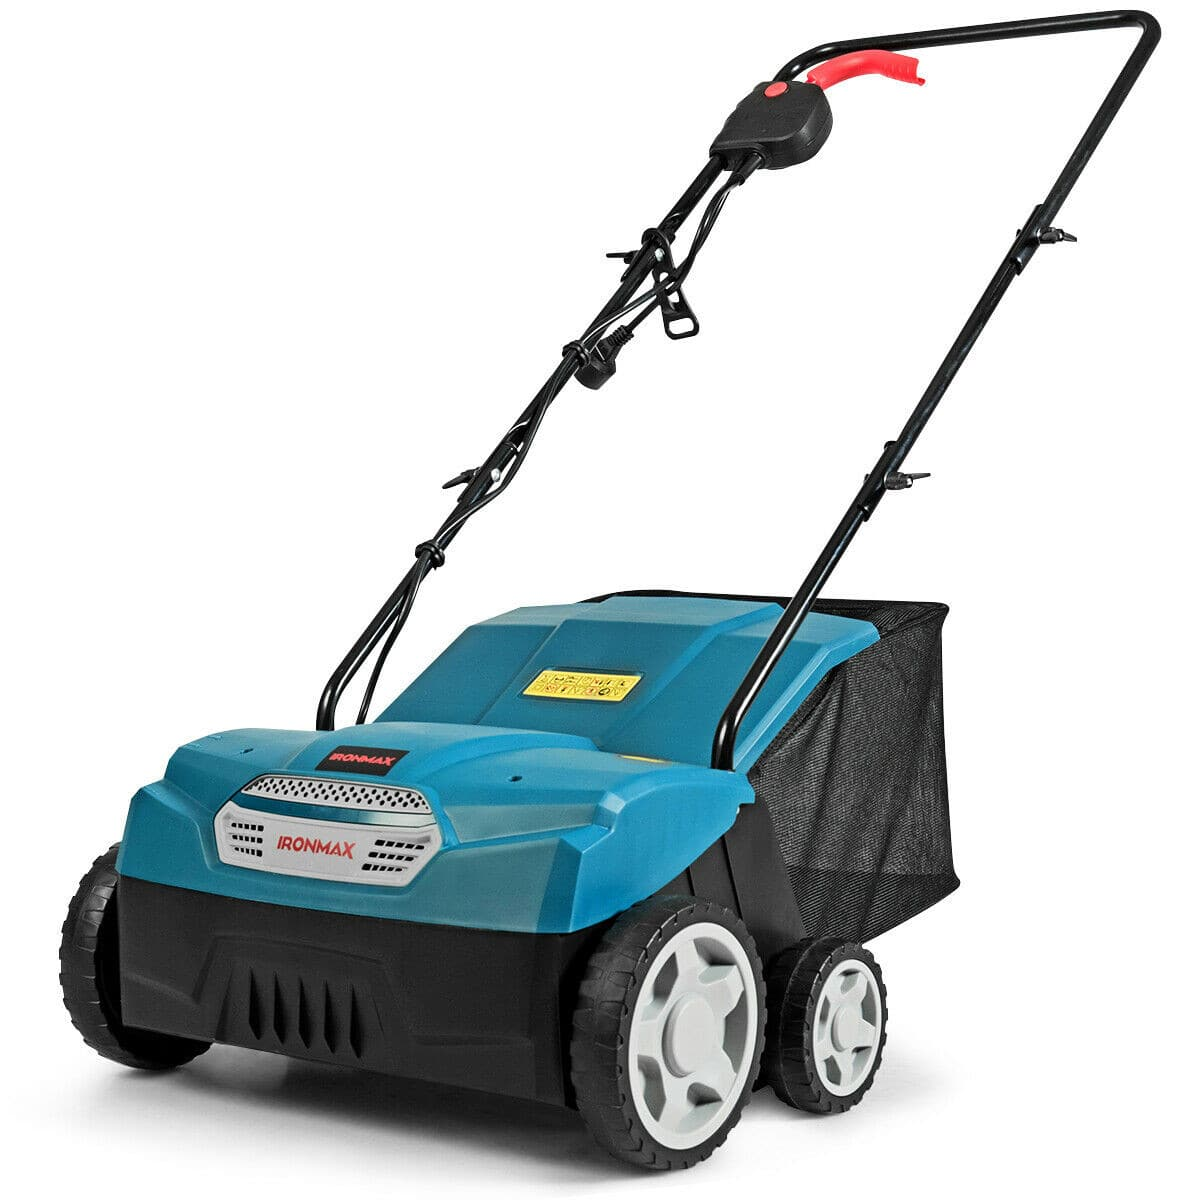 """Costway 1400 W 13"""" Electric Scarifier and Lawn Dethatcher with Collection Bag-$79.95 + Free Shipping"""